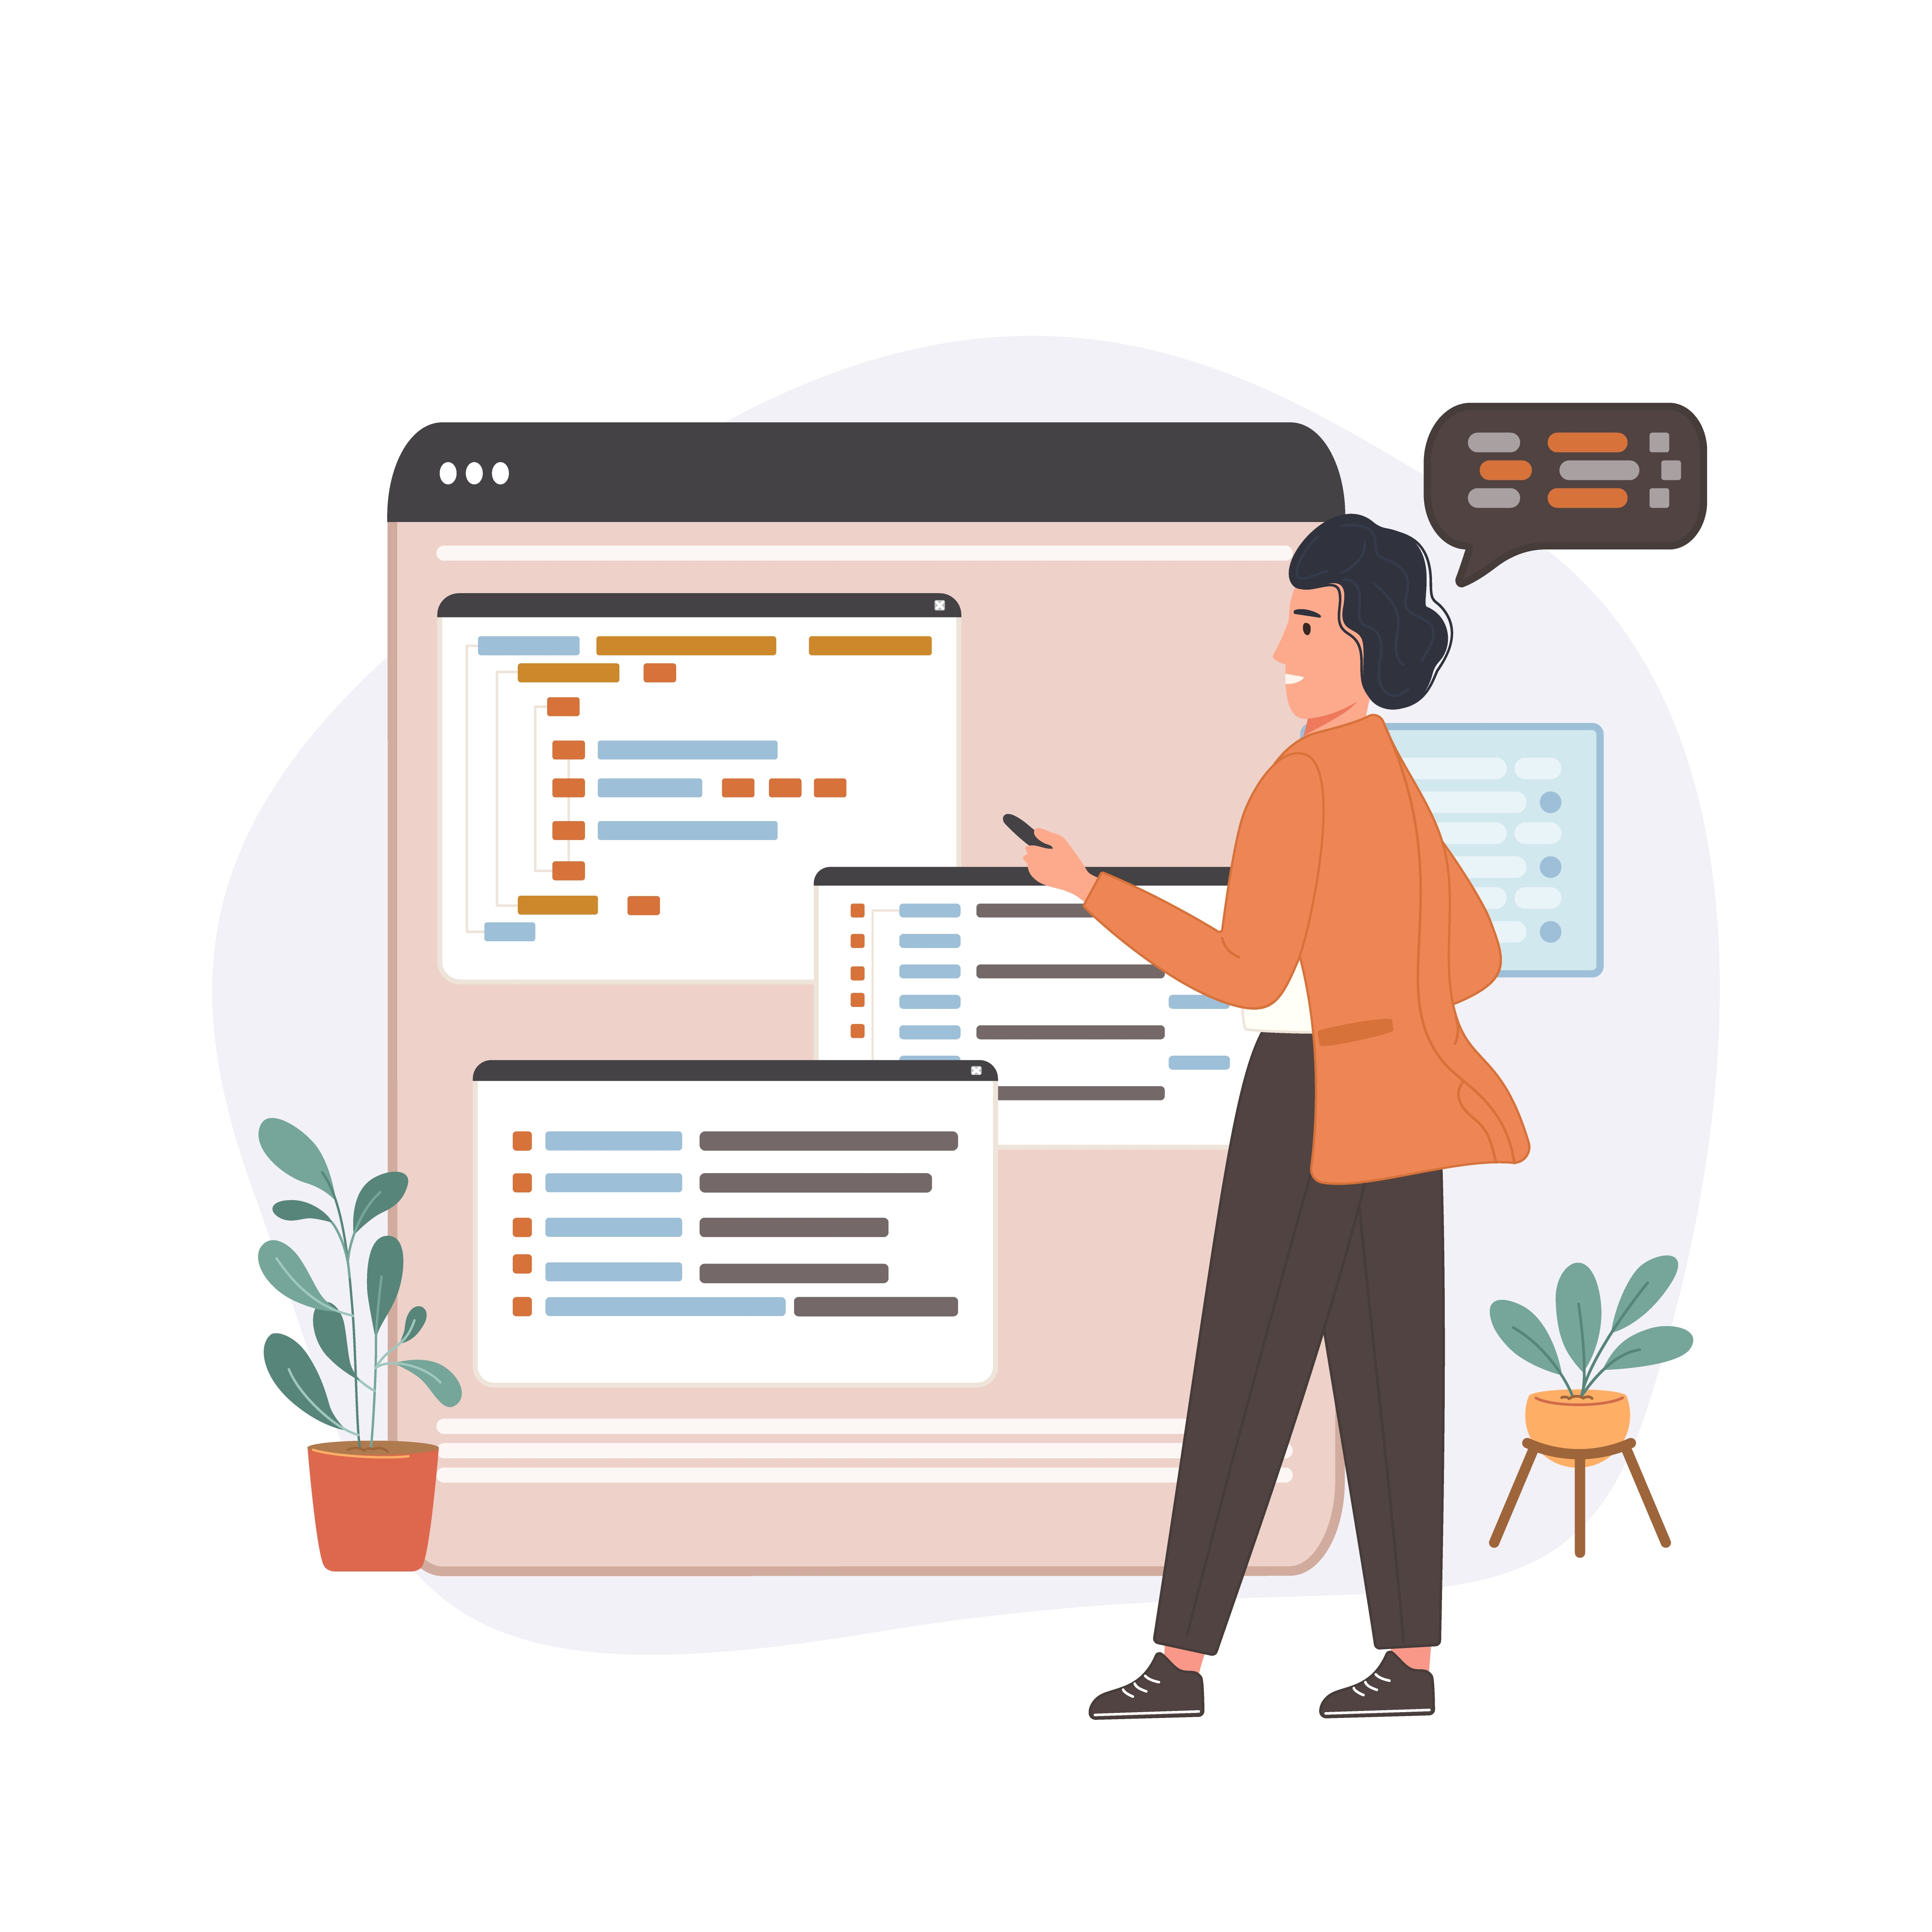 Basic Programming Languages for Web Developers Programmer Going Through Code